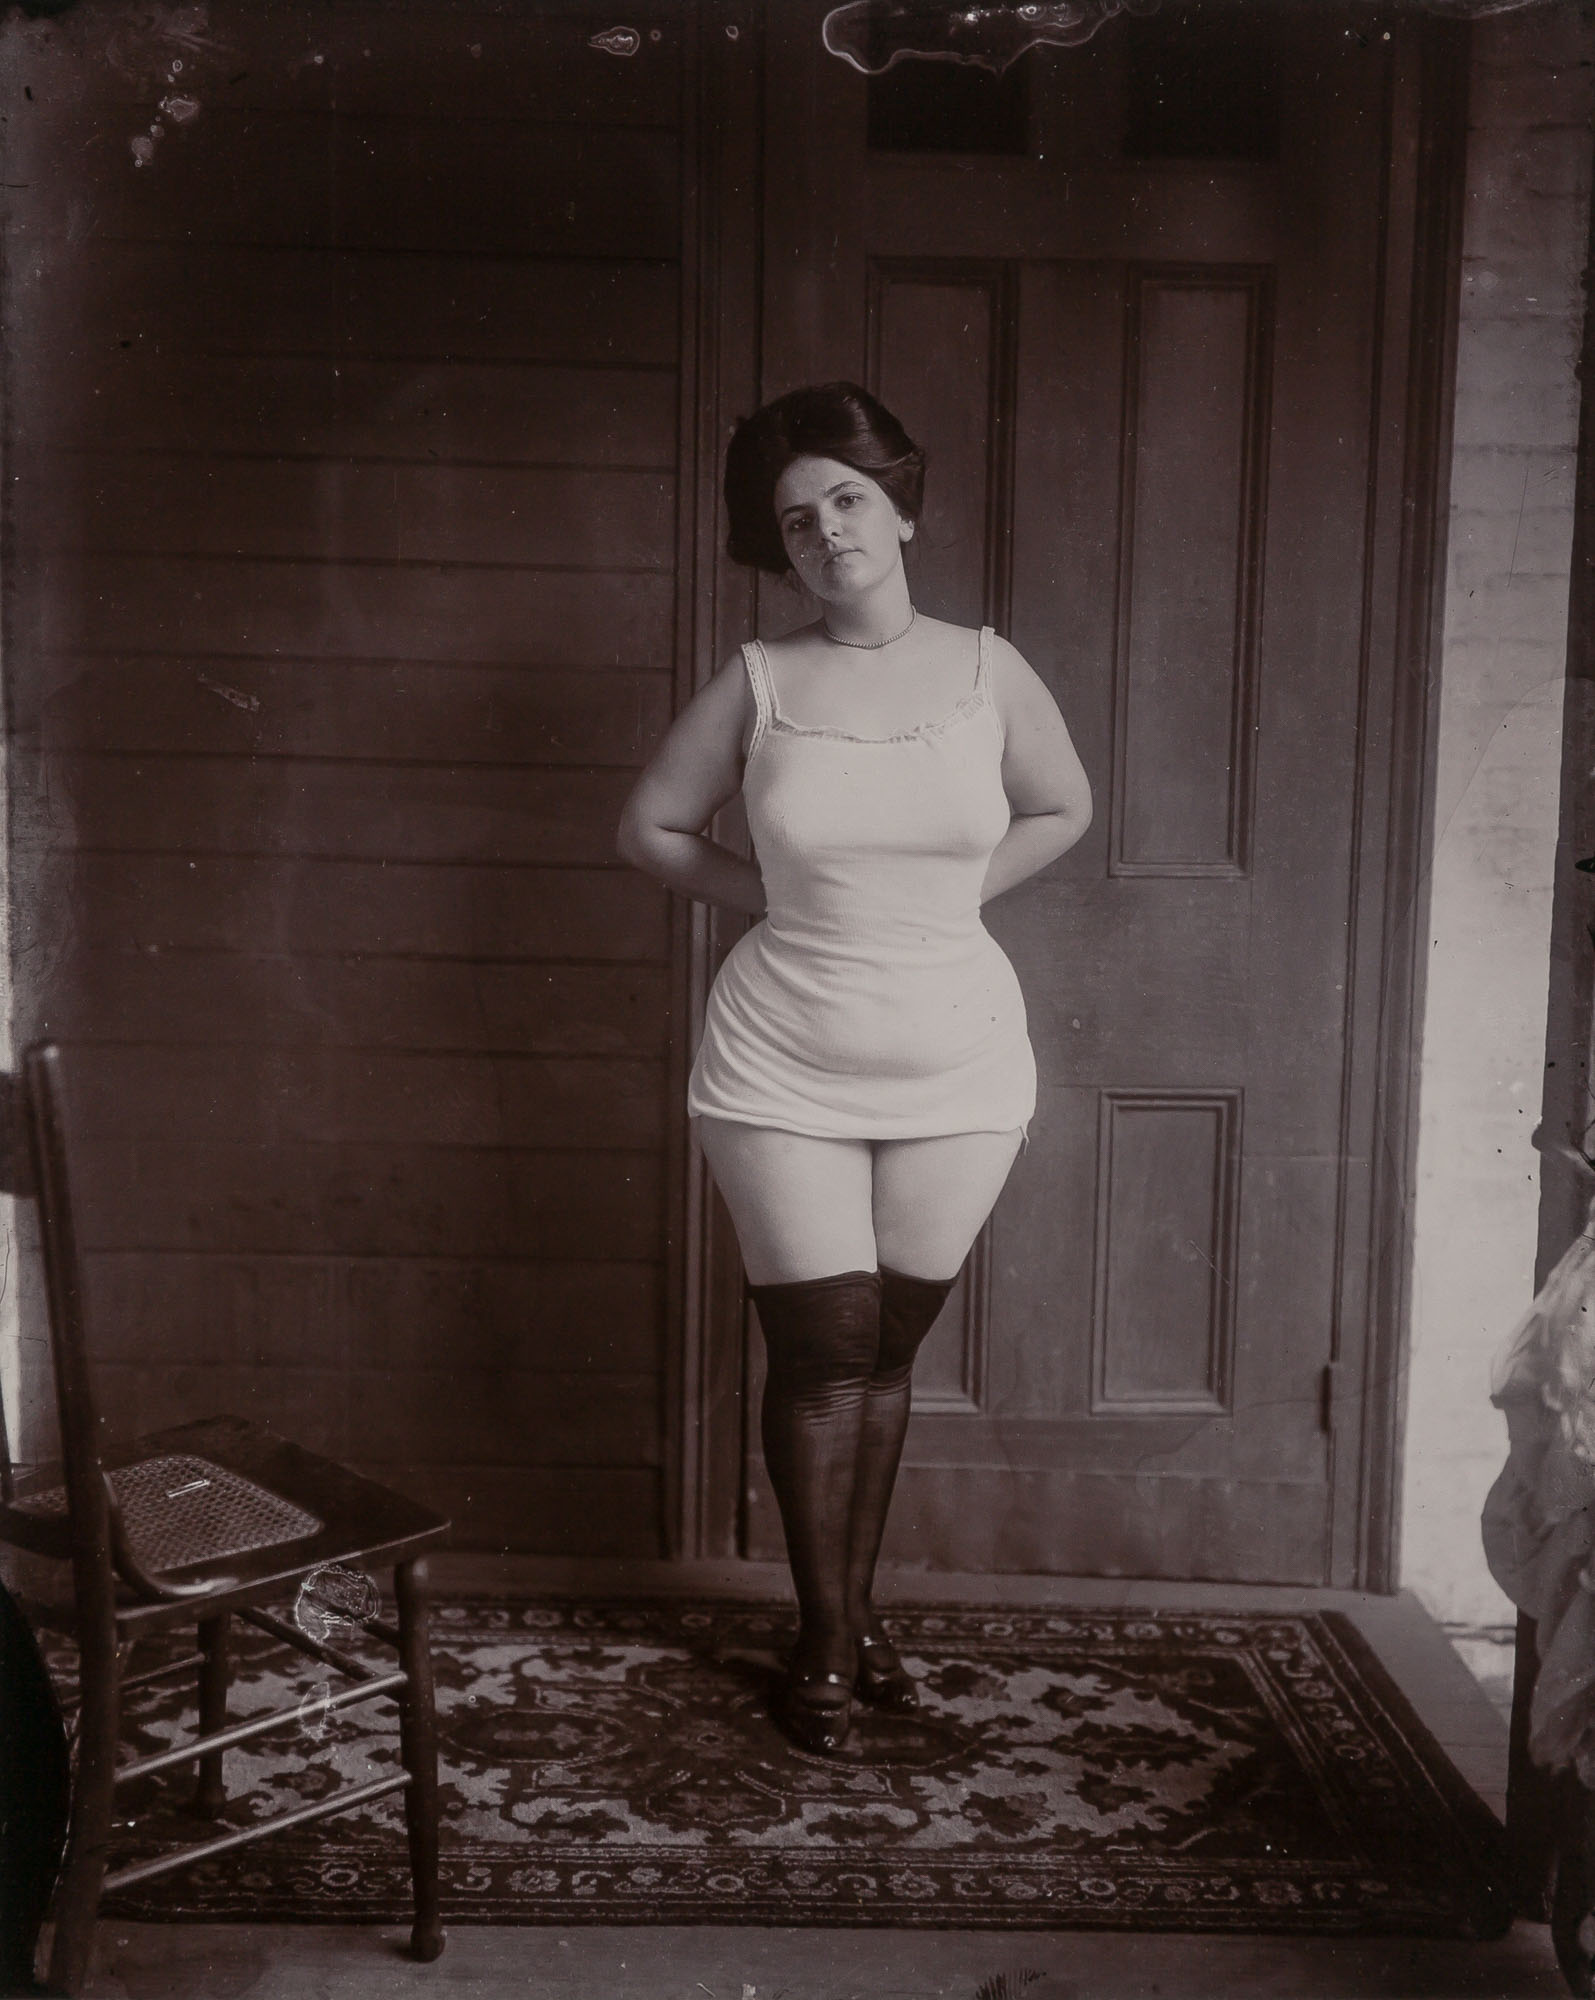 Lot image - BELLOCQ, E. J. (1873-1949)  [Storyville portrait, New Orleans, woman in underclothes standing on rug, about 1900]